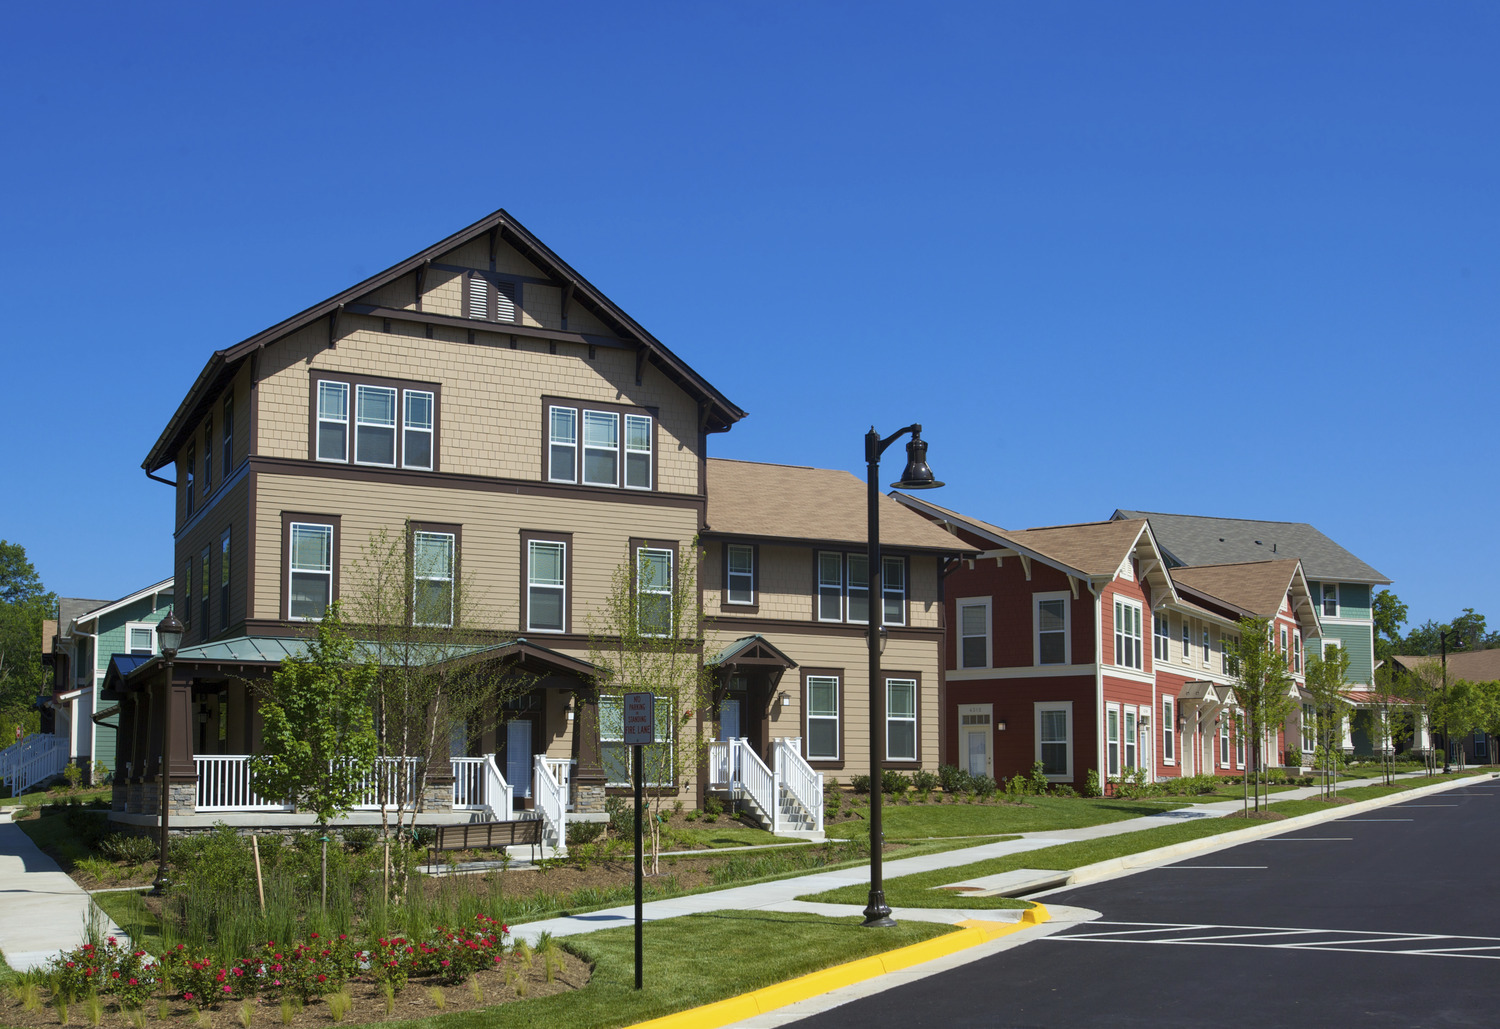 CBG builds George Mason University Faculty Housing, a 157 Townhomes Across 37 Buildings for University Faculty and Staff in Fairfax, VA - Image #4